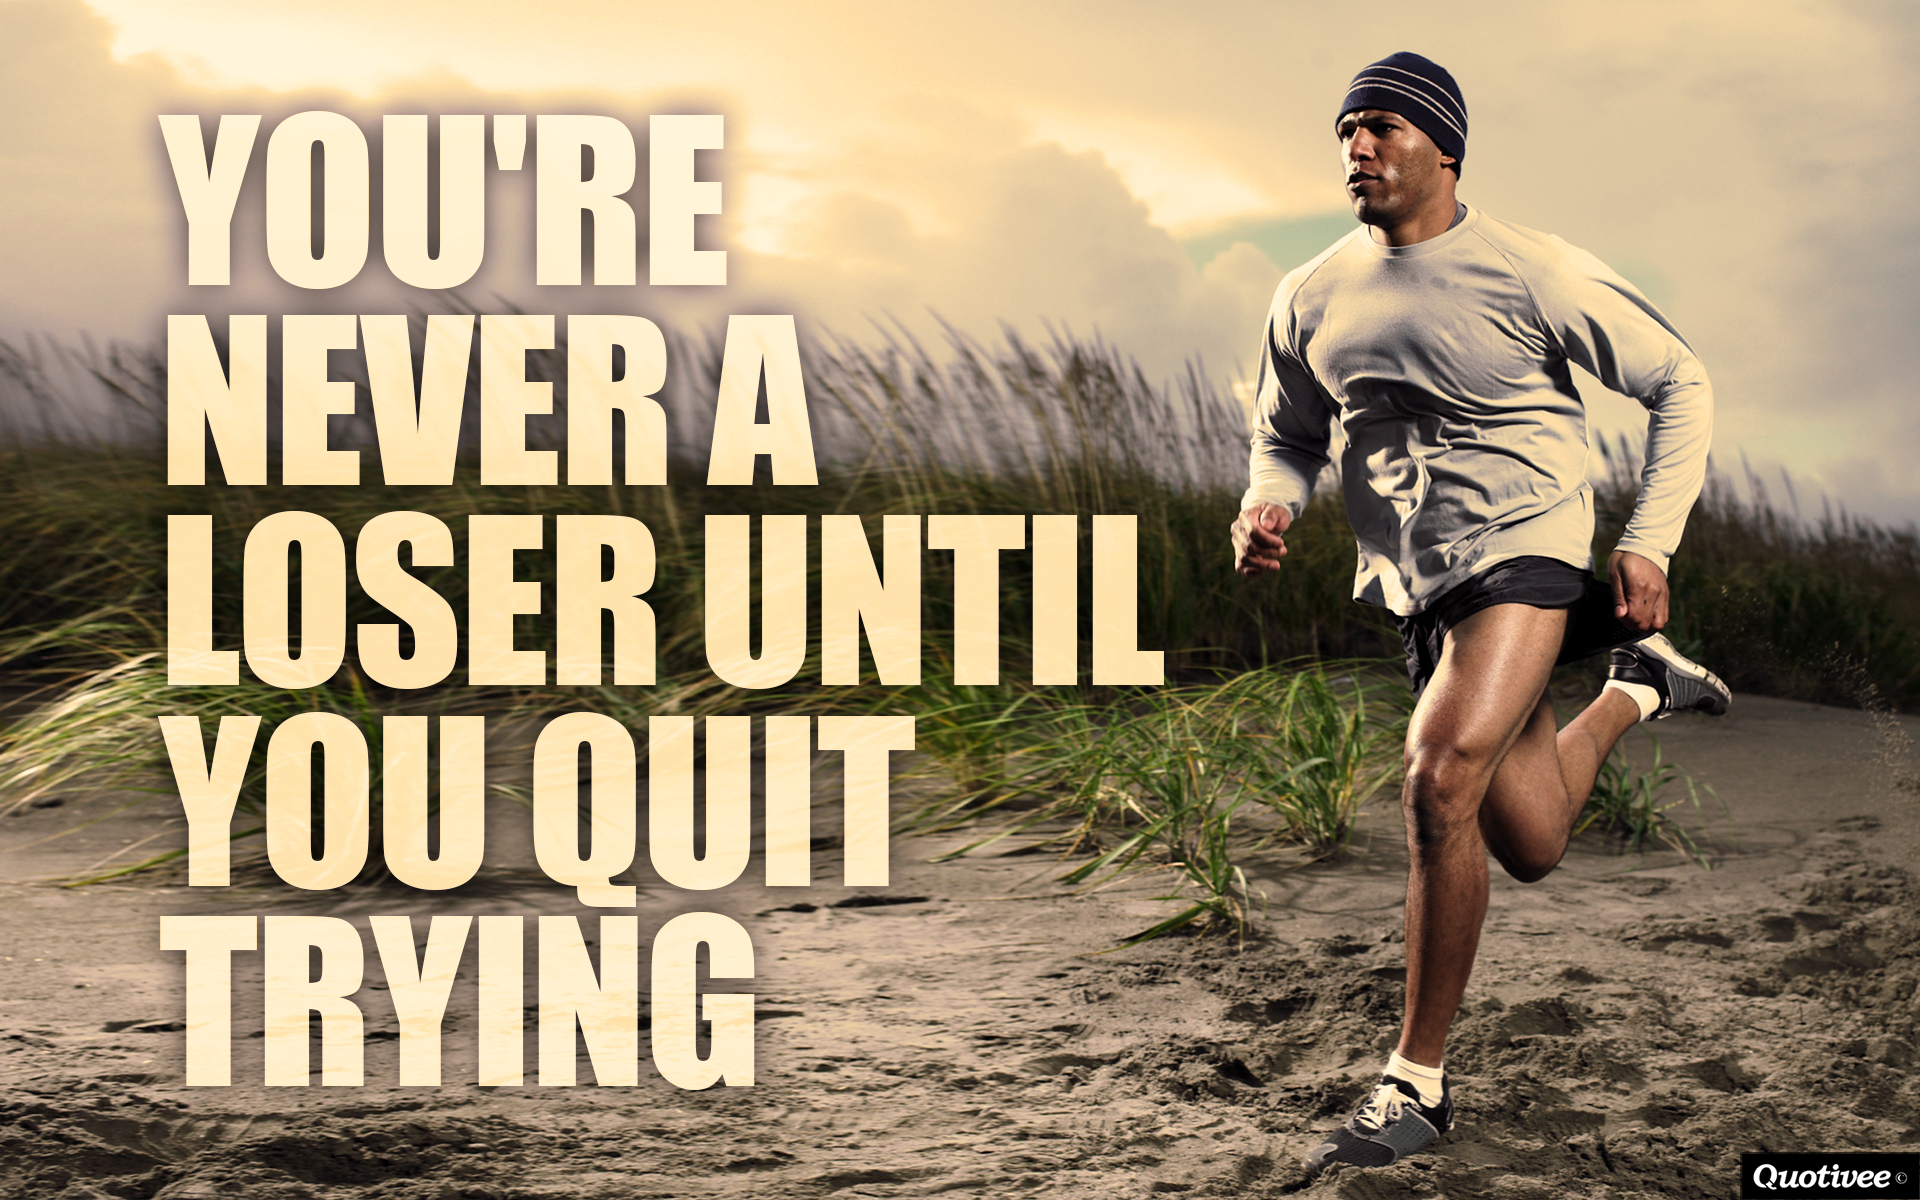 I Quit Wallpaper Hd You Re Never A Loser Until You Quit Trying Inspirational